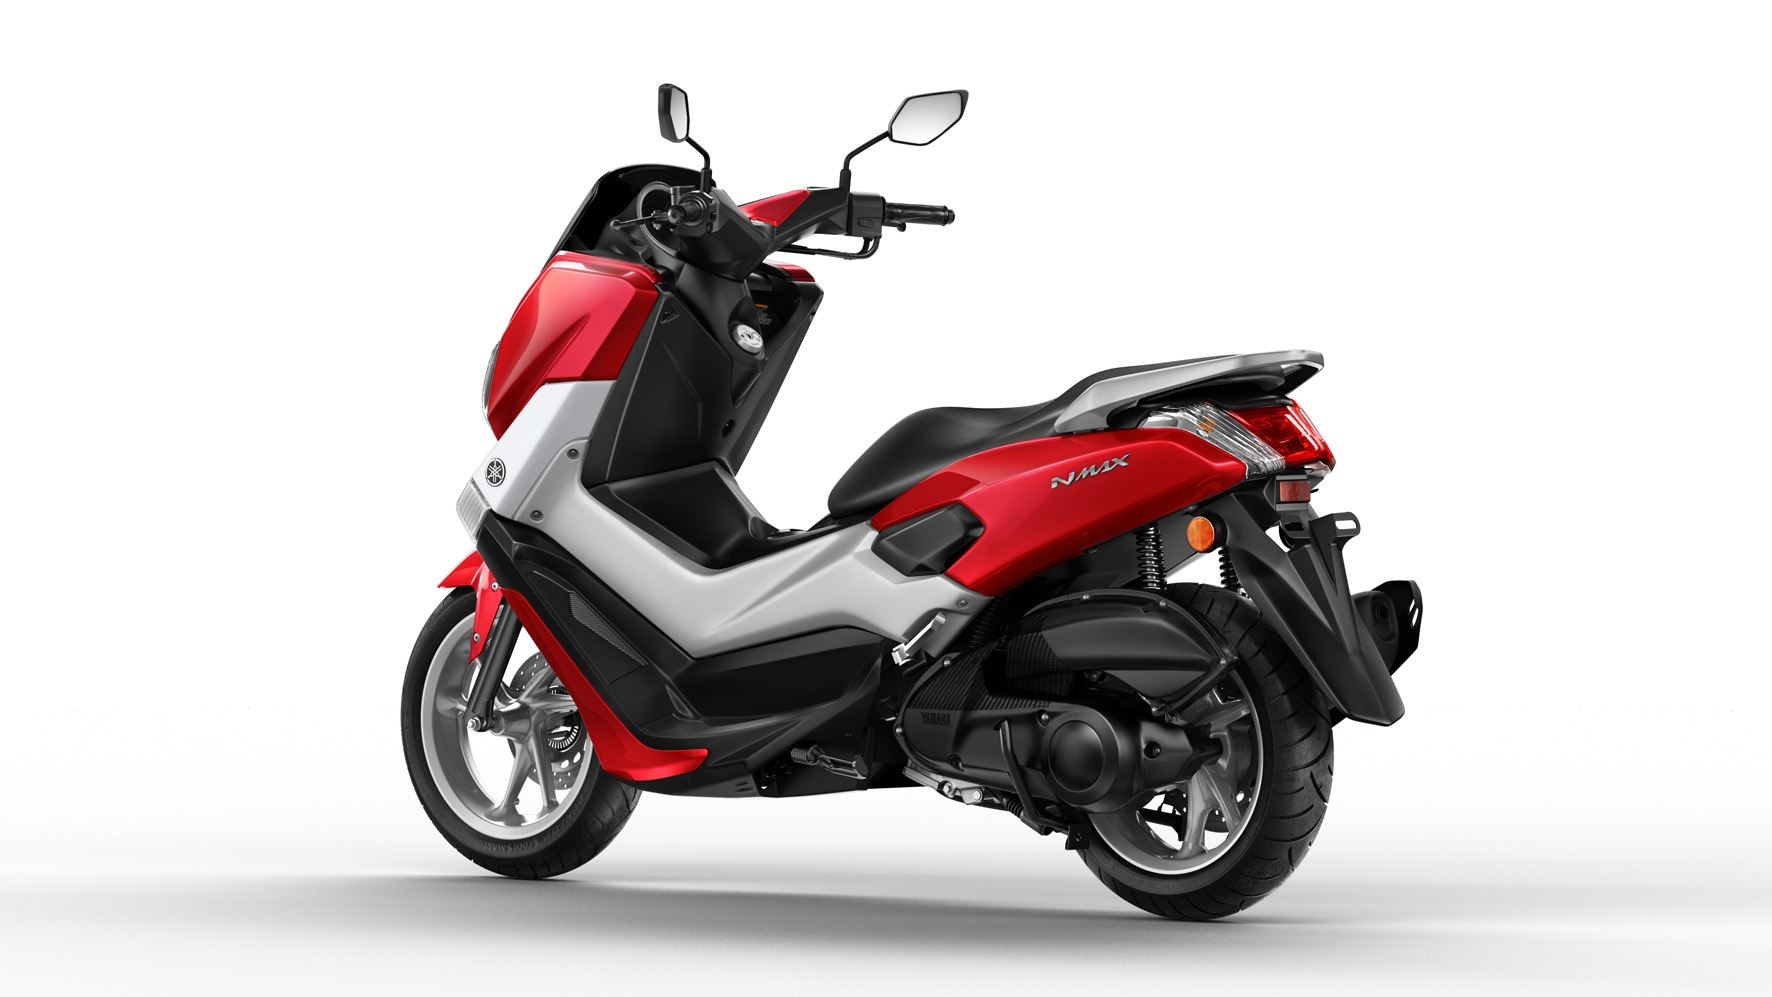 scooter yamaha nmax e naked mt 03 chegam em maio ao brasil carros uol uol carros. Black Bedroom Furniture Sets. Home Design Ideas